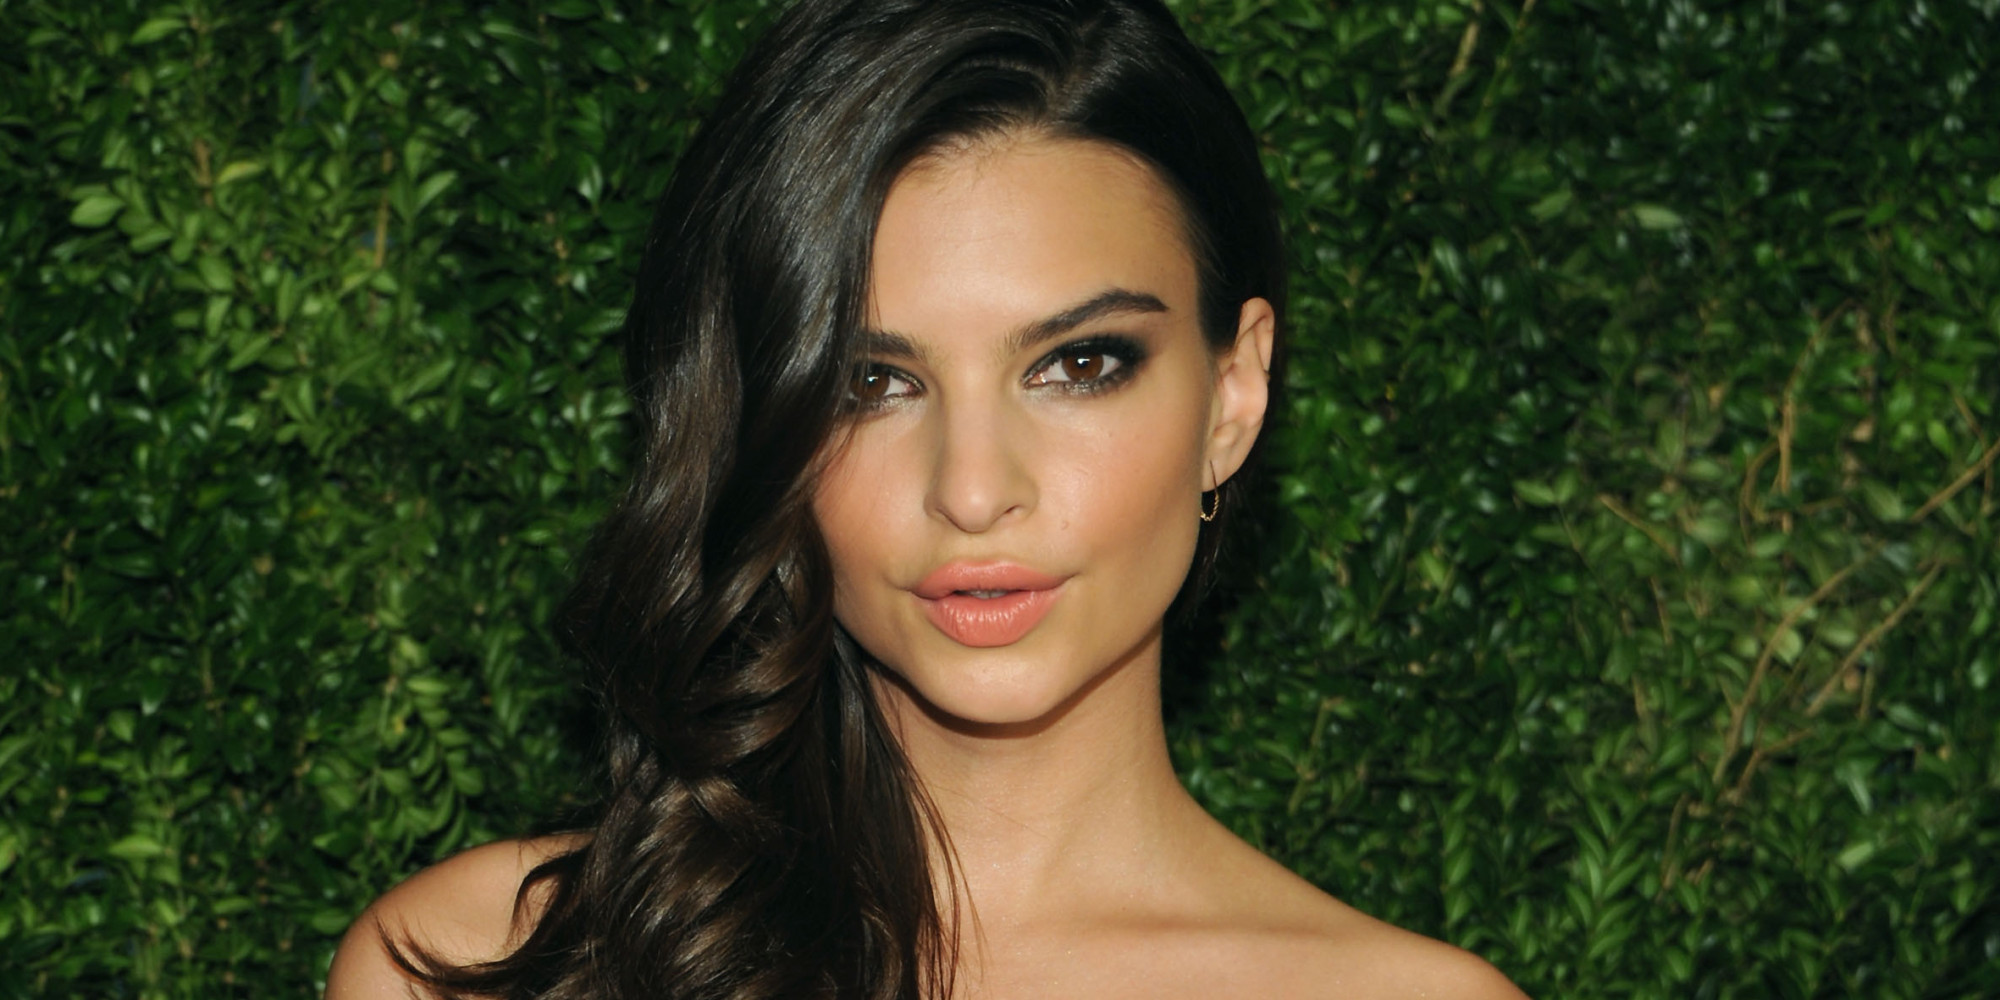 Emily Ratajkowski Gets Glamorous For CFDA/Vogue Fashion Fund Awards